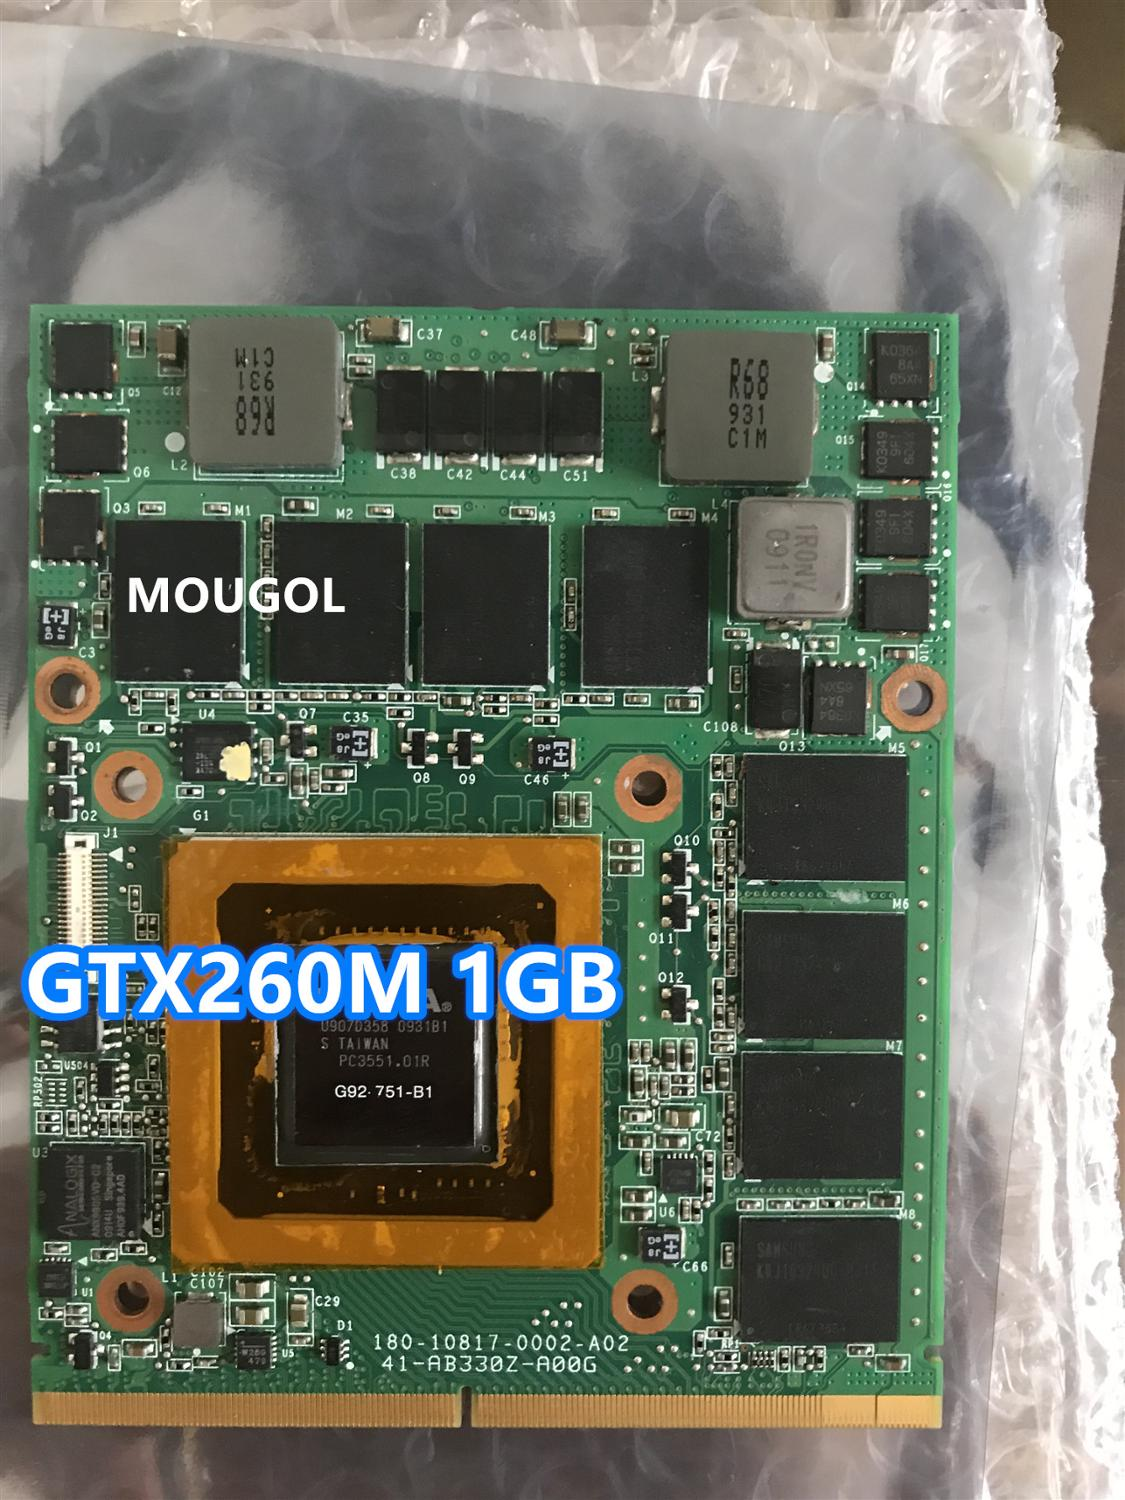 GTX 260M GTX260M 1GB WDXVH G92-751-B1 P/N: 0WDXVH 96RJ4 VGA Video Card for Laptop Dell <font><b>Alienware</b></font> M15X <font><b>M17X</b></font> <font><b>R1</b></font> Fully Tested image